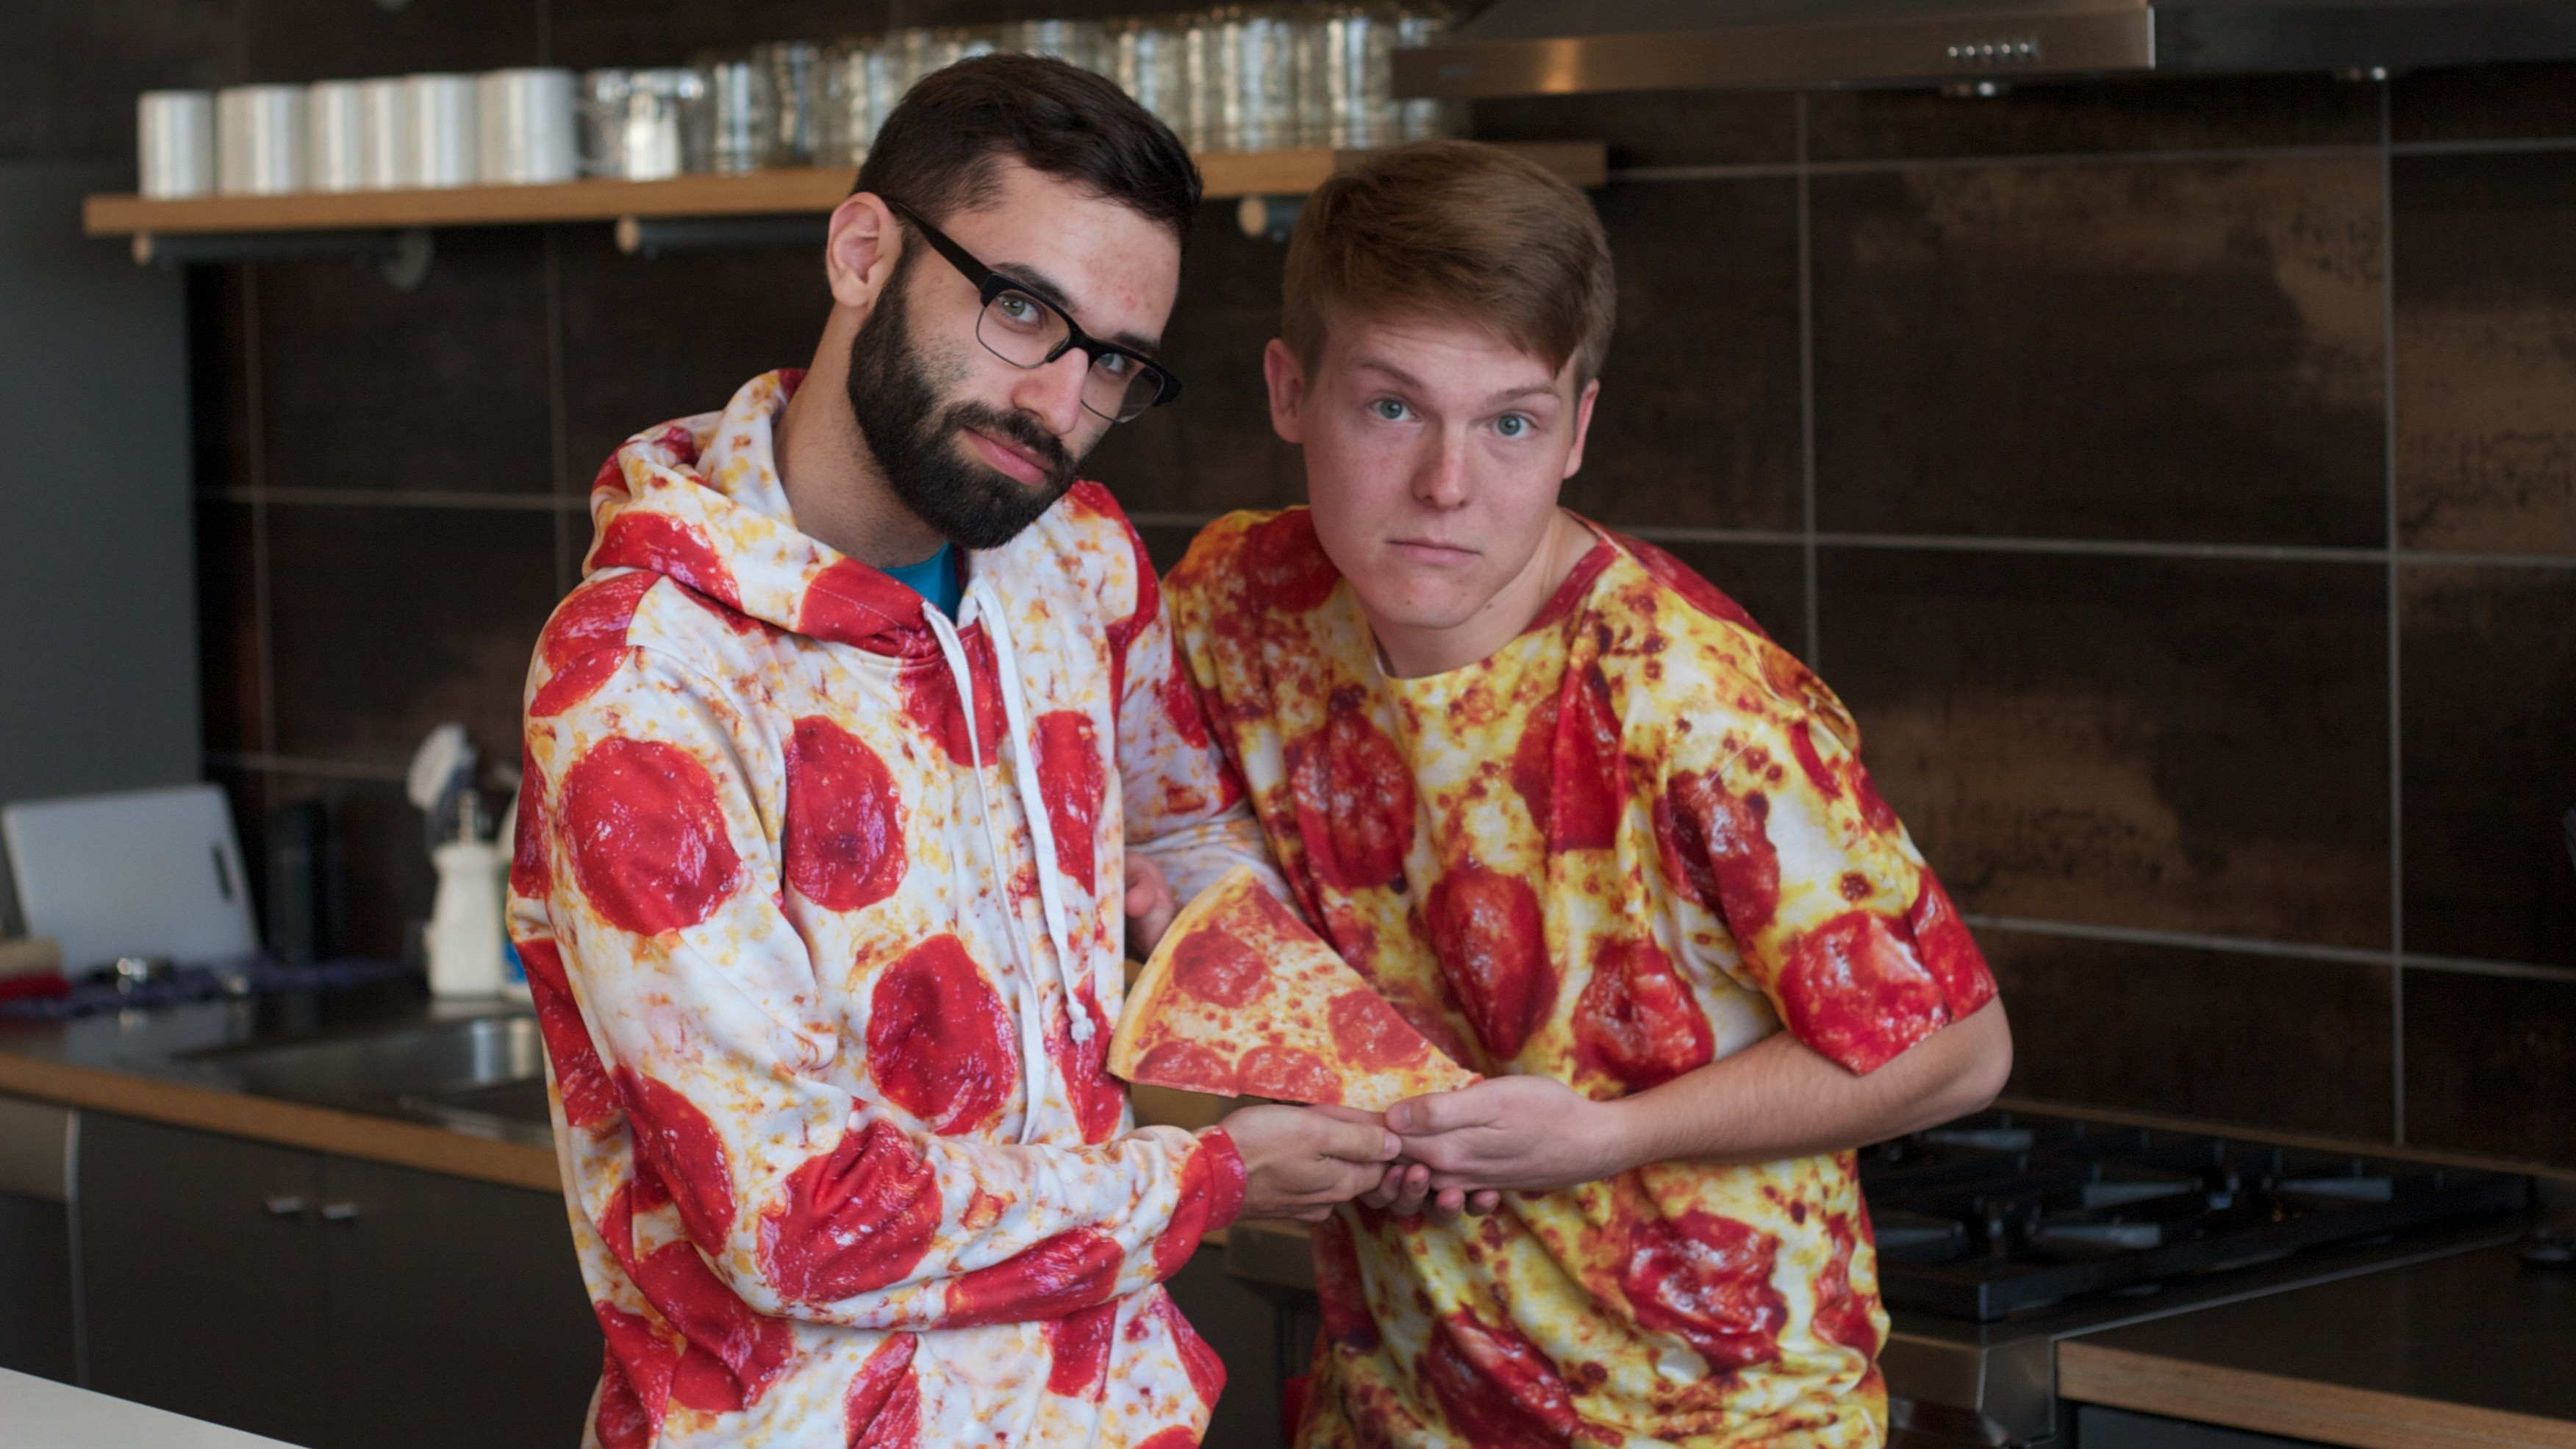 The Pizza Pals Duo Turns DJ Sets of Glitchy Pop Into Playable Video Games